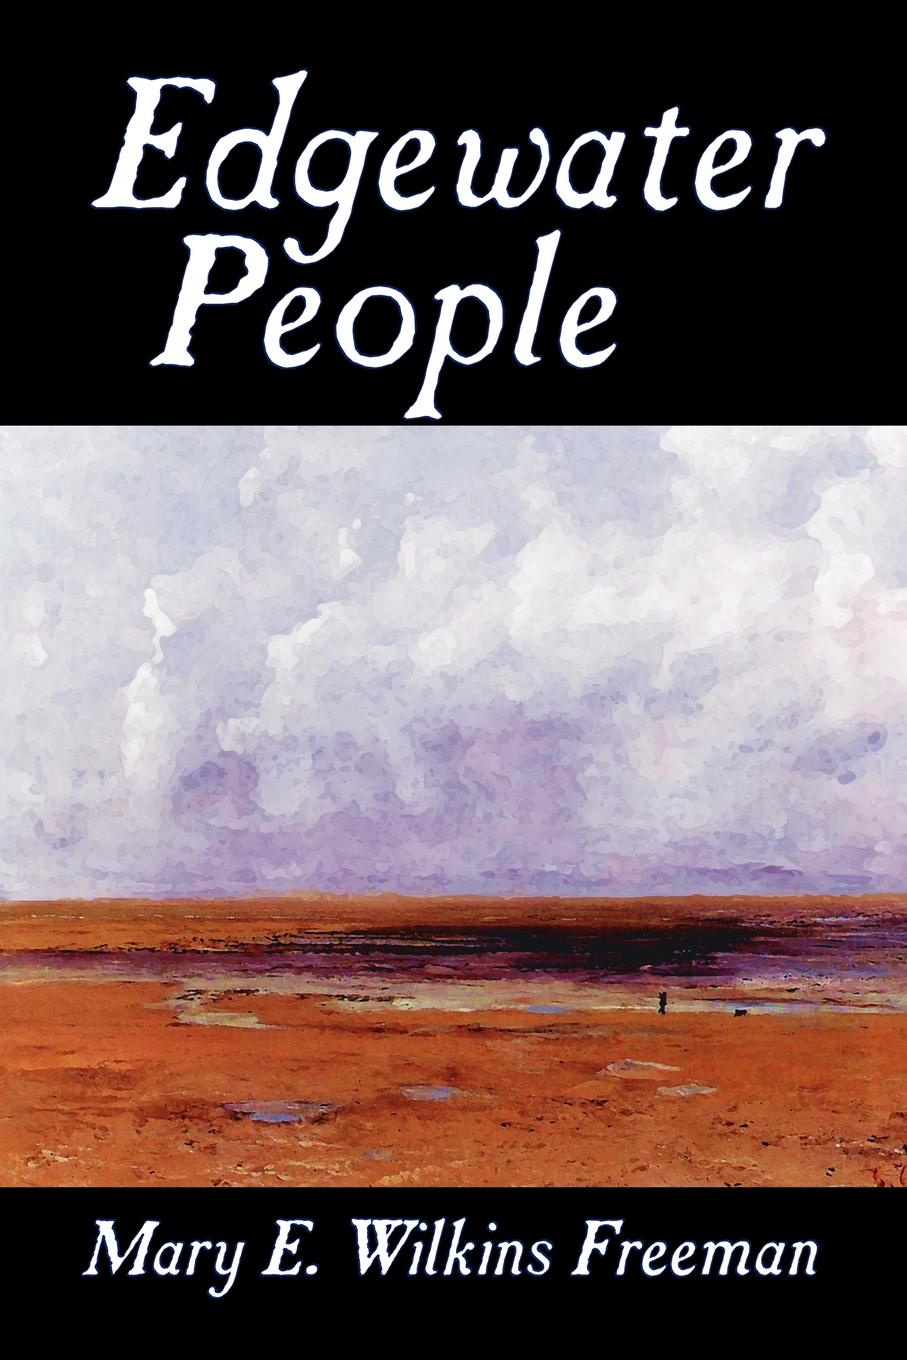 Mary E. Wilkins Freeman Edgewater People by Mary E. Wilkins Freeman, Fiction, Short Stories william e arnal jesus and the village scribes